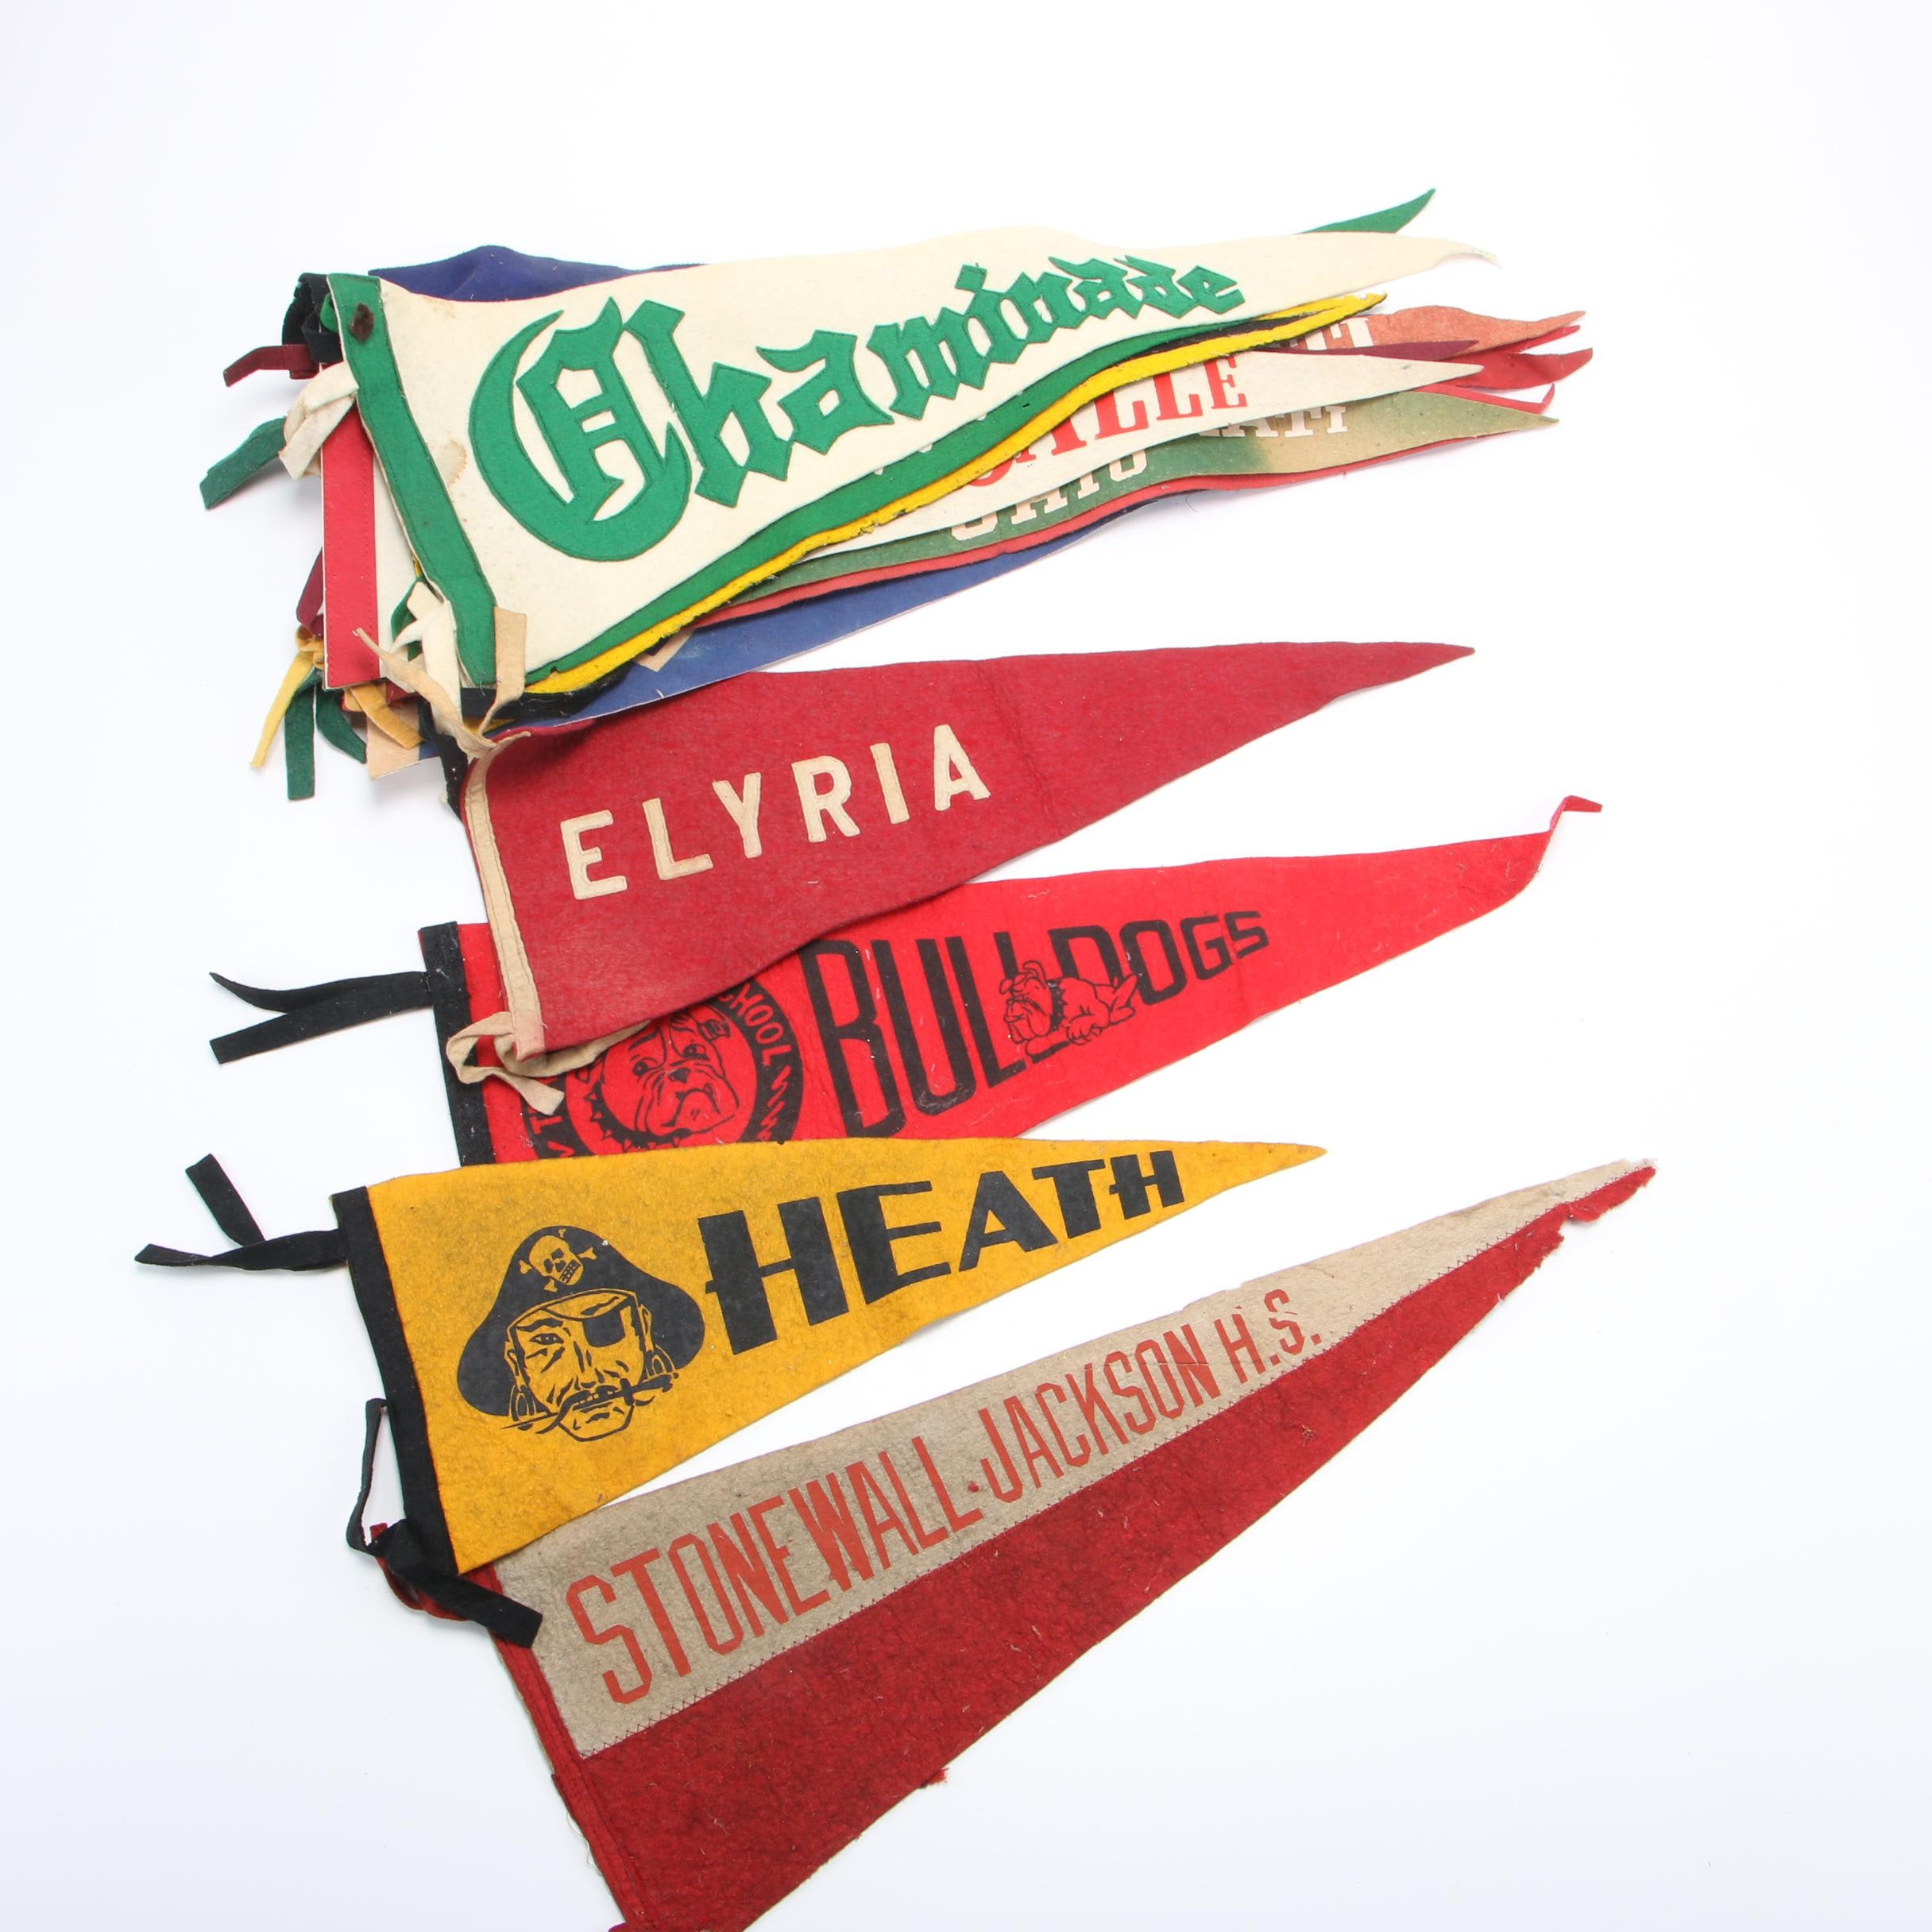 Vintage Pennants including Cincinnati and the Cub Scouts